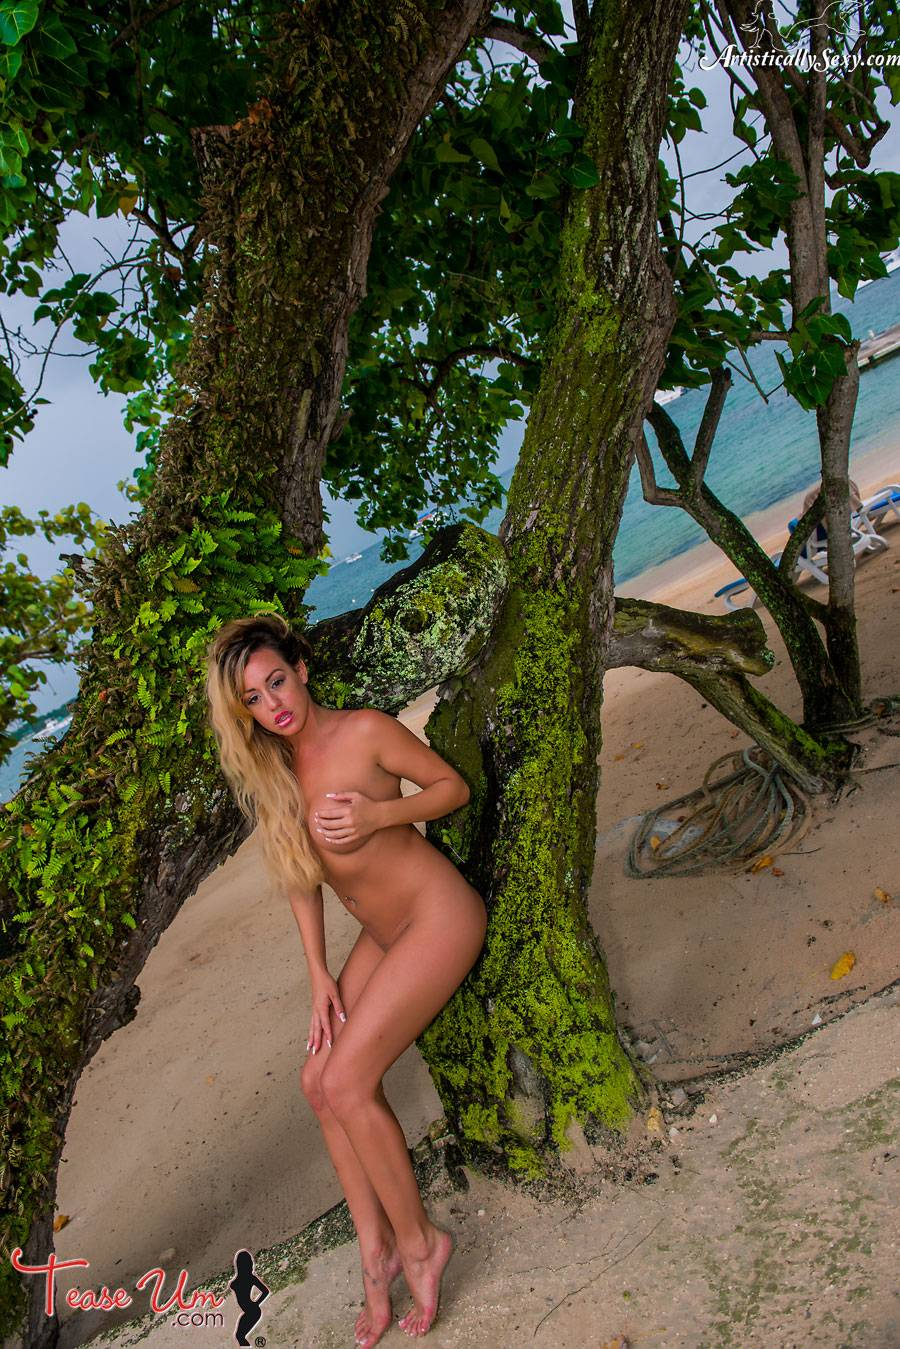 teaseum model Lilliana Chamberlin nudes on the beach thumb 1